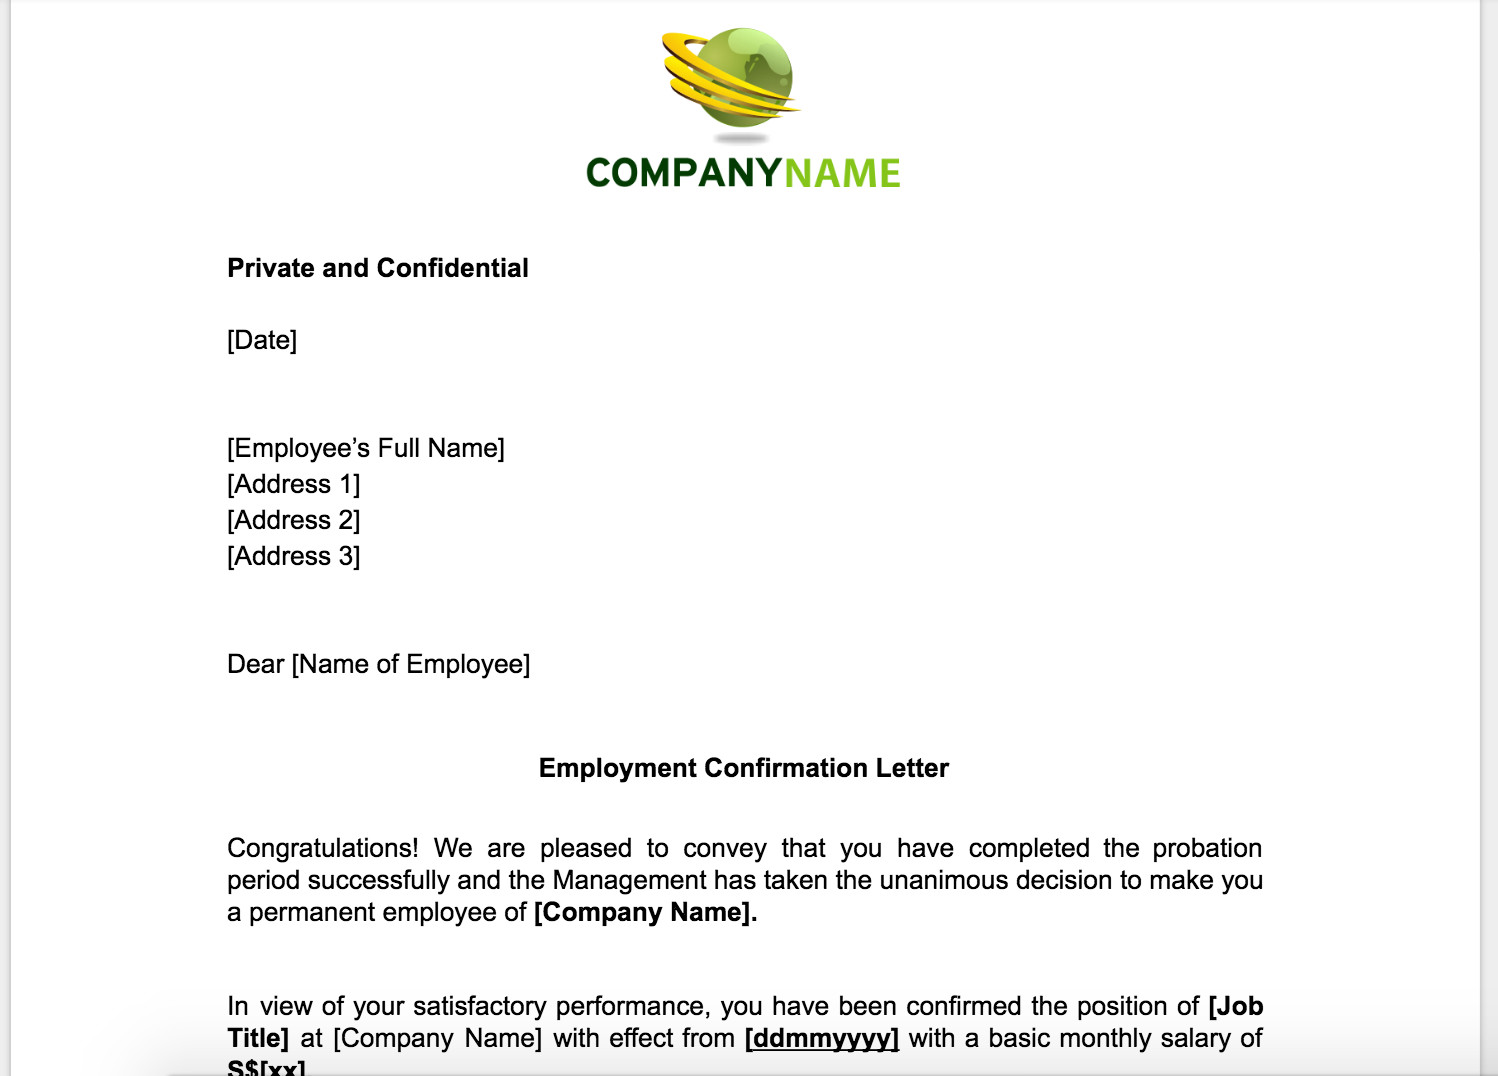 Anne caron consulting hr consulting services employment anne caron consulting hr consulting services employment confirmation letter after probation thecheapjerseys Image collections